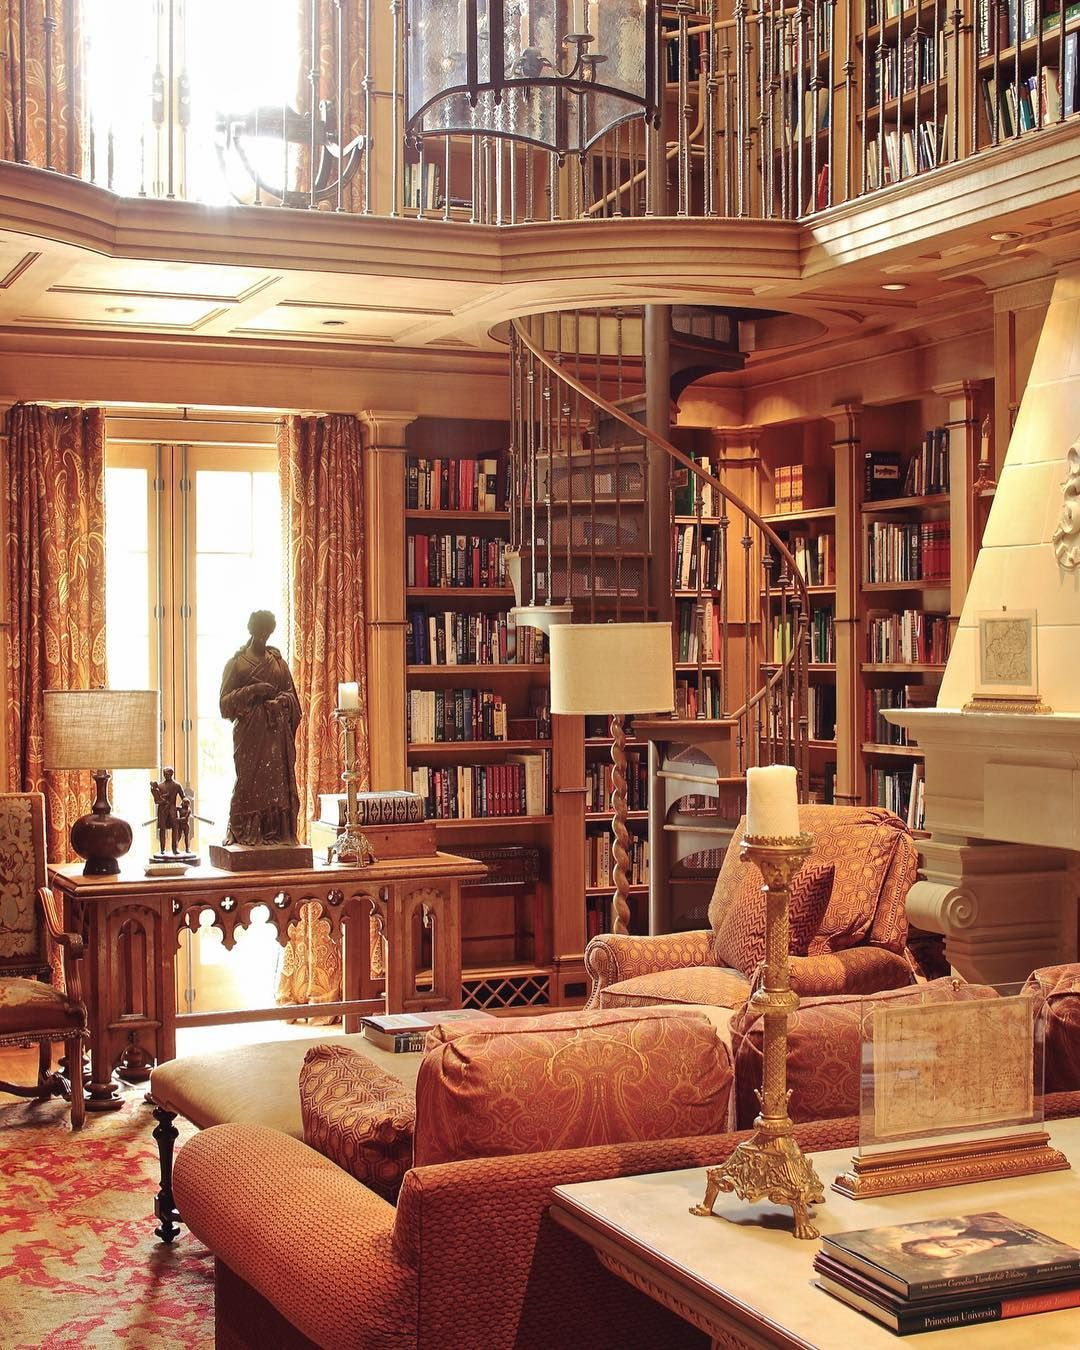 Beautiful Home Library Rooms: Home Libraries, House Interior